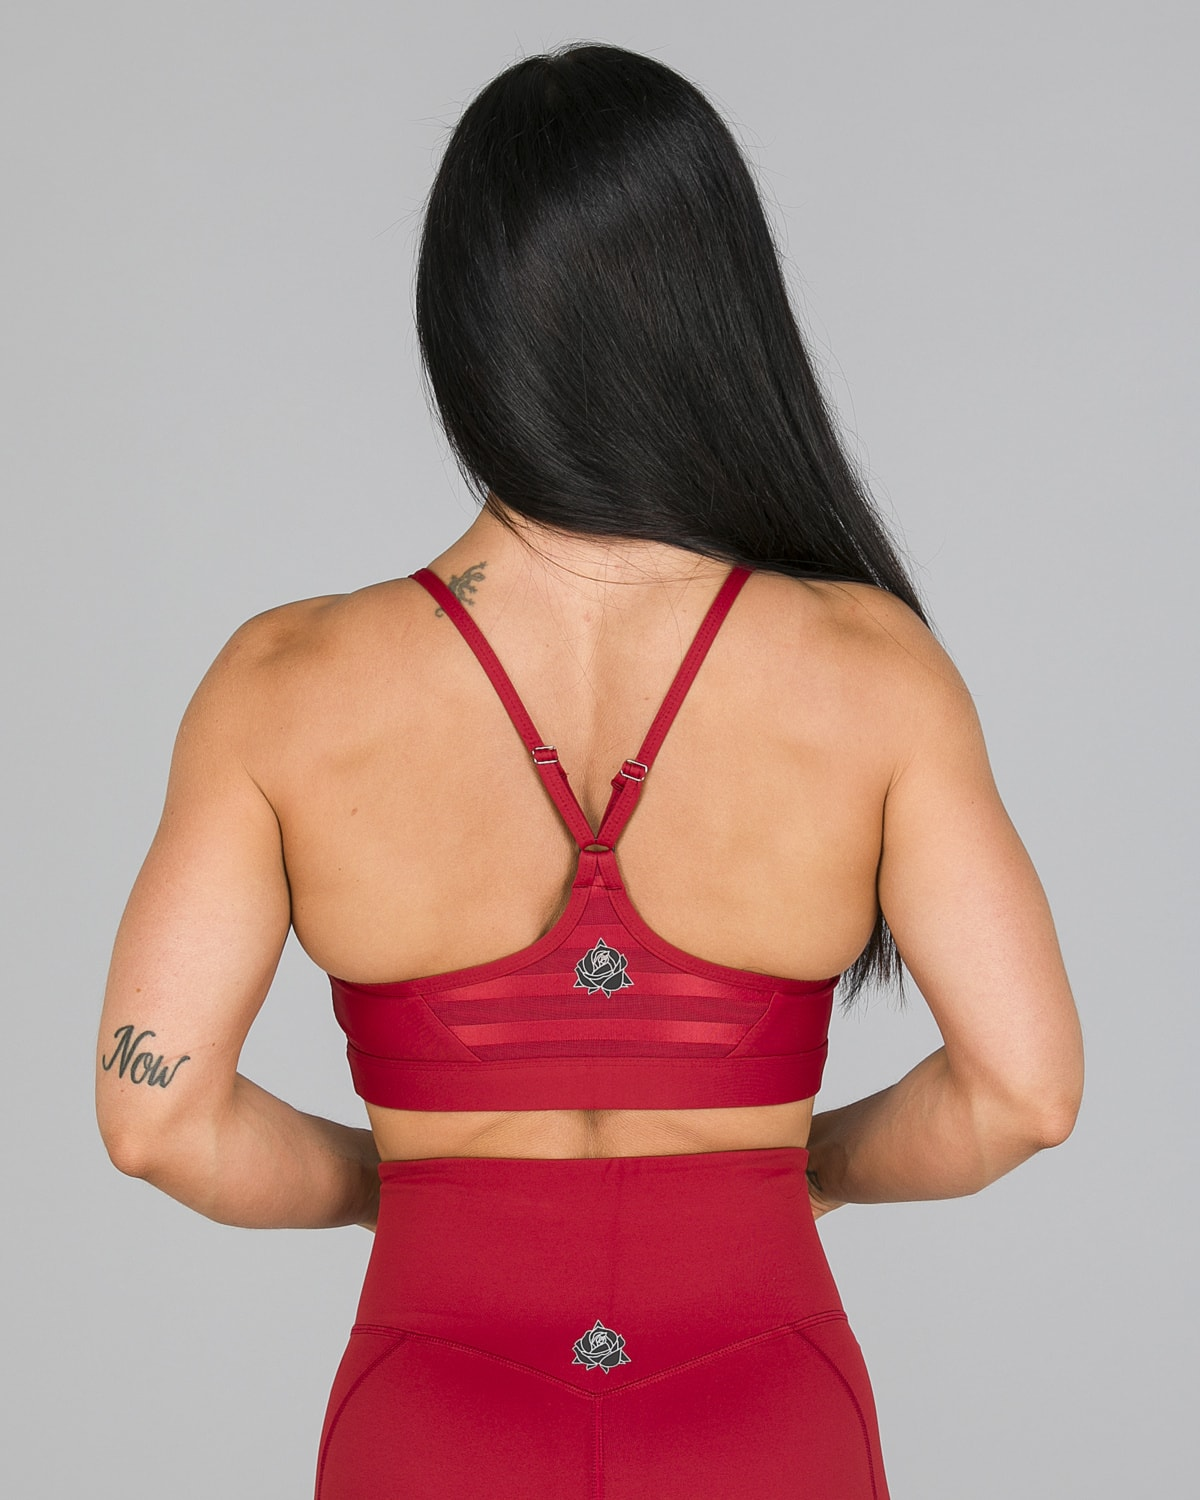 Workout Empire – Herrsted Sportsbh – Mars Red4